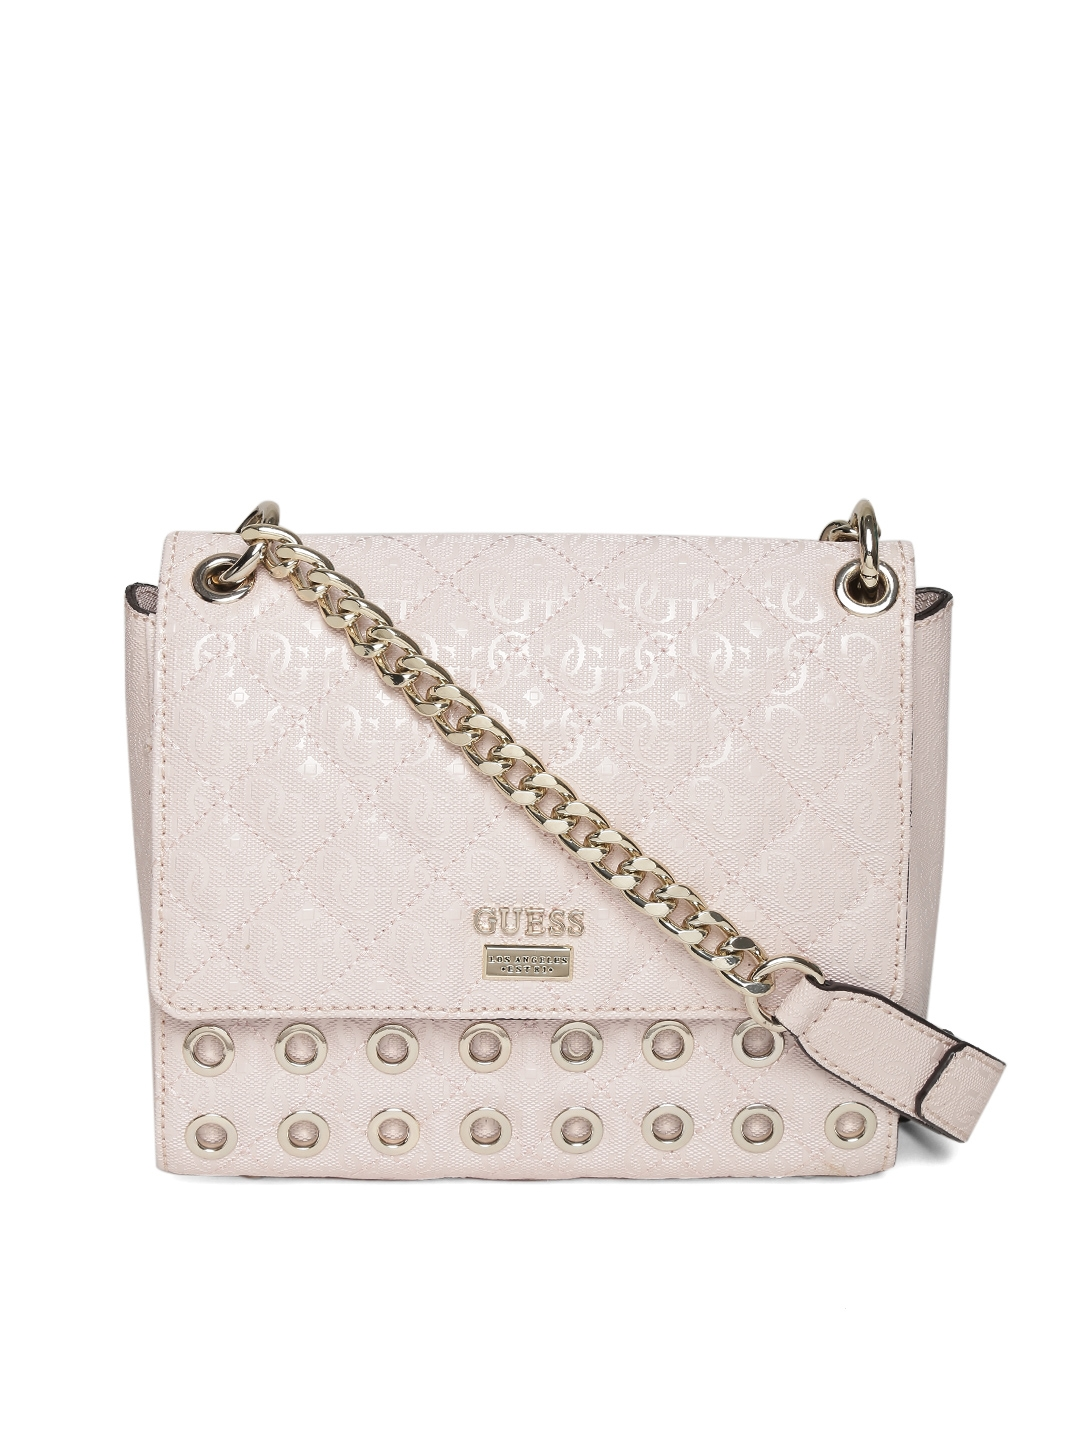 Buy GUESS Light Pink Logo Textured   Quilted Sling Bag - Handbags for Women  1738154   Myntra c22209dc93